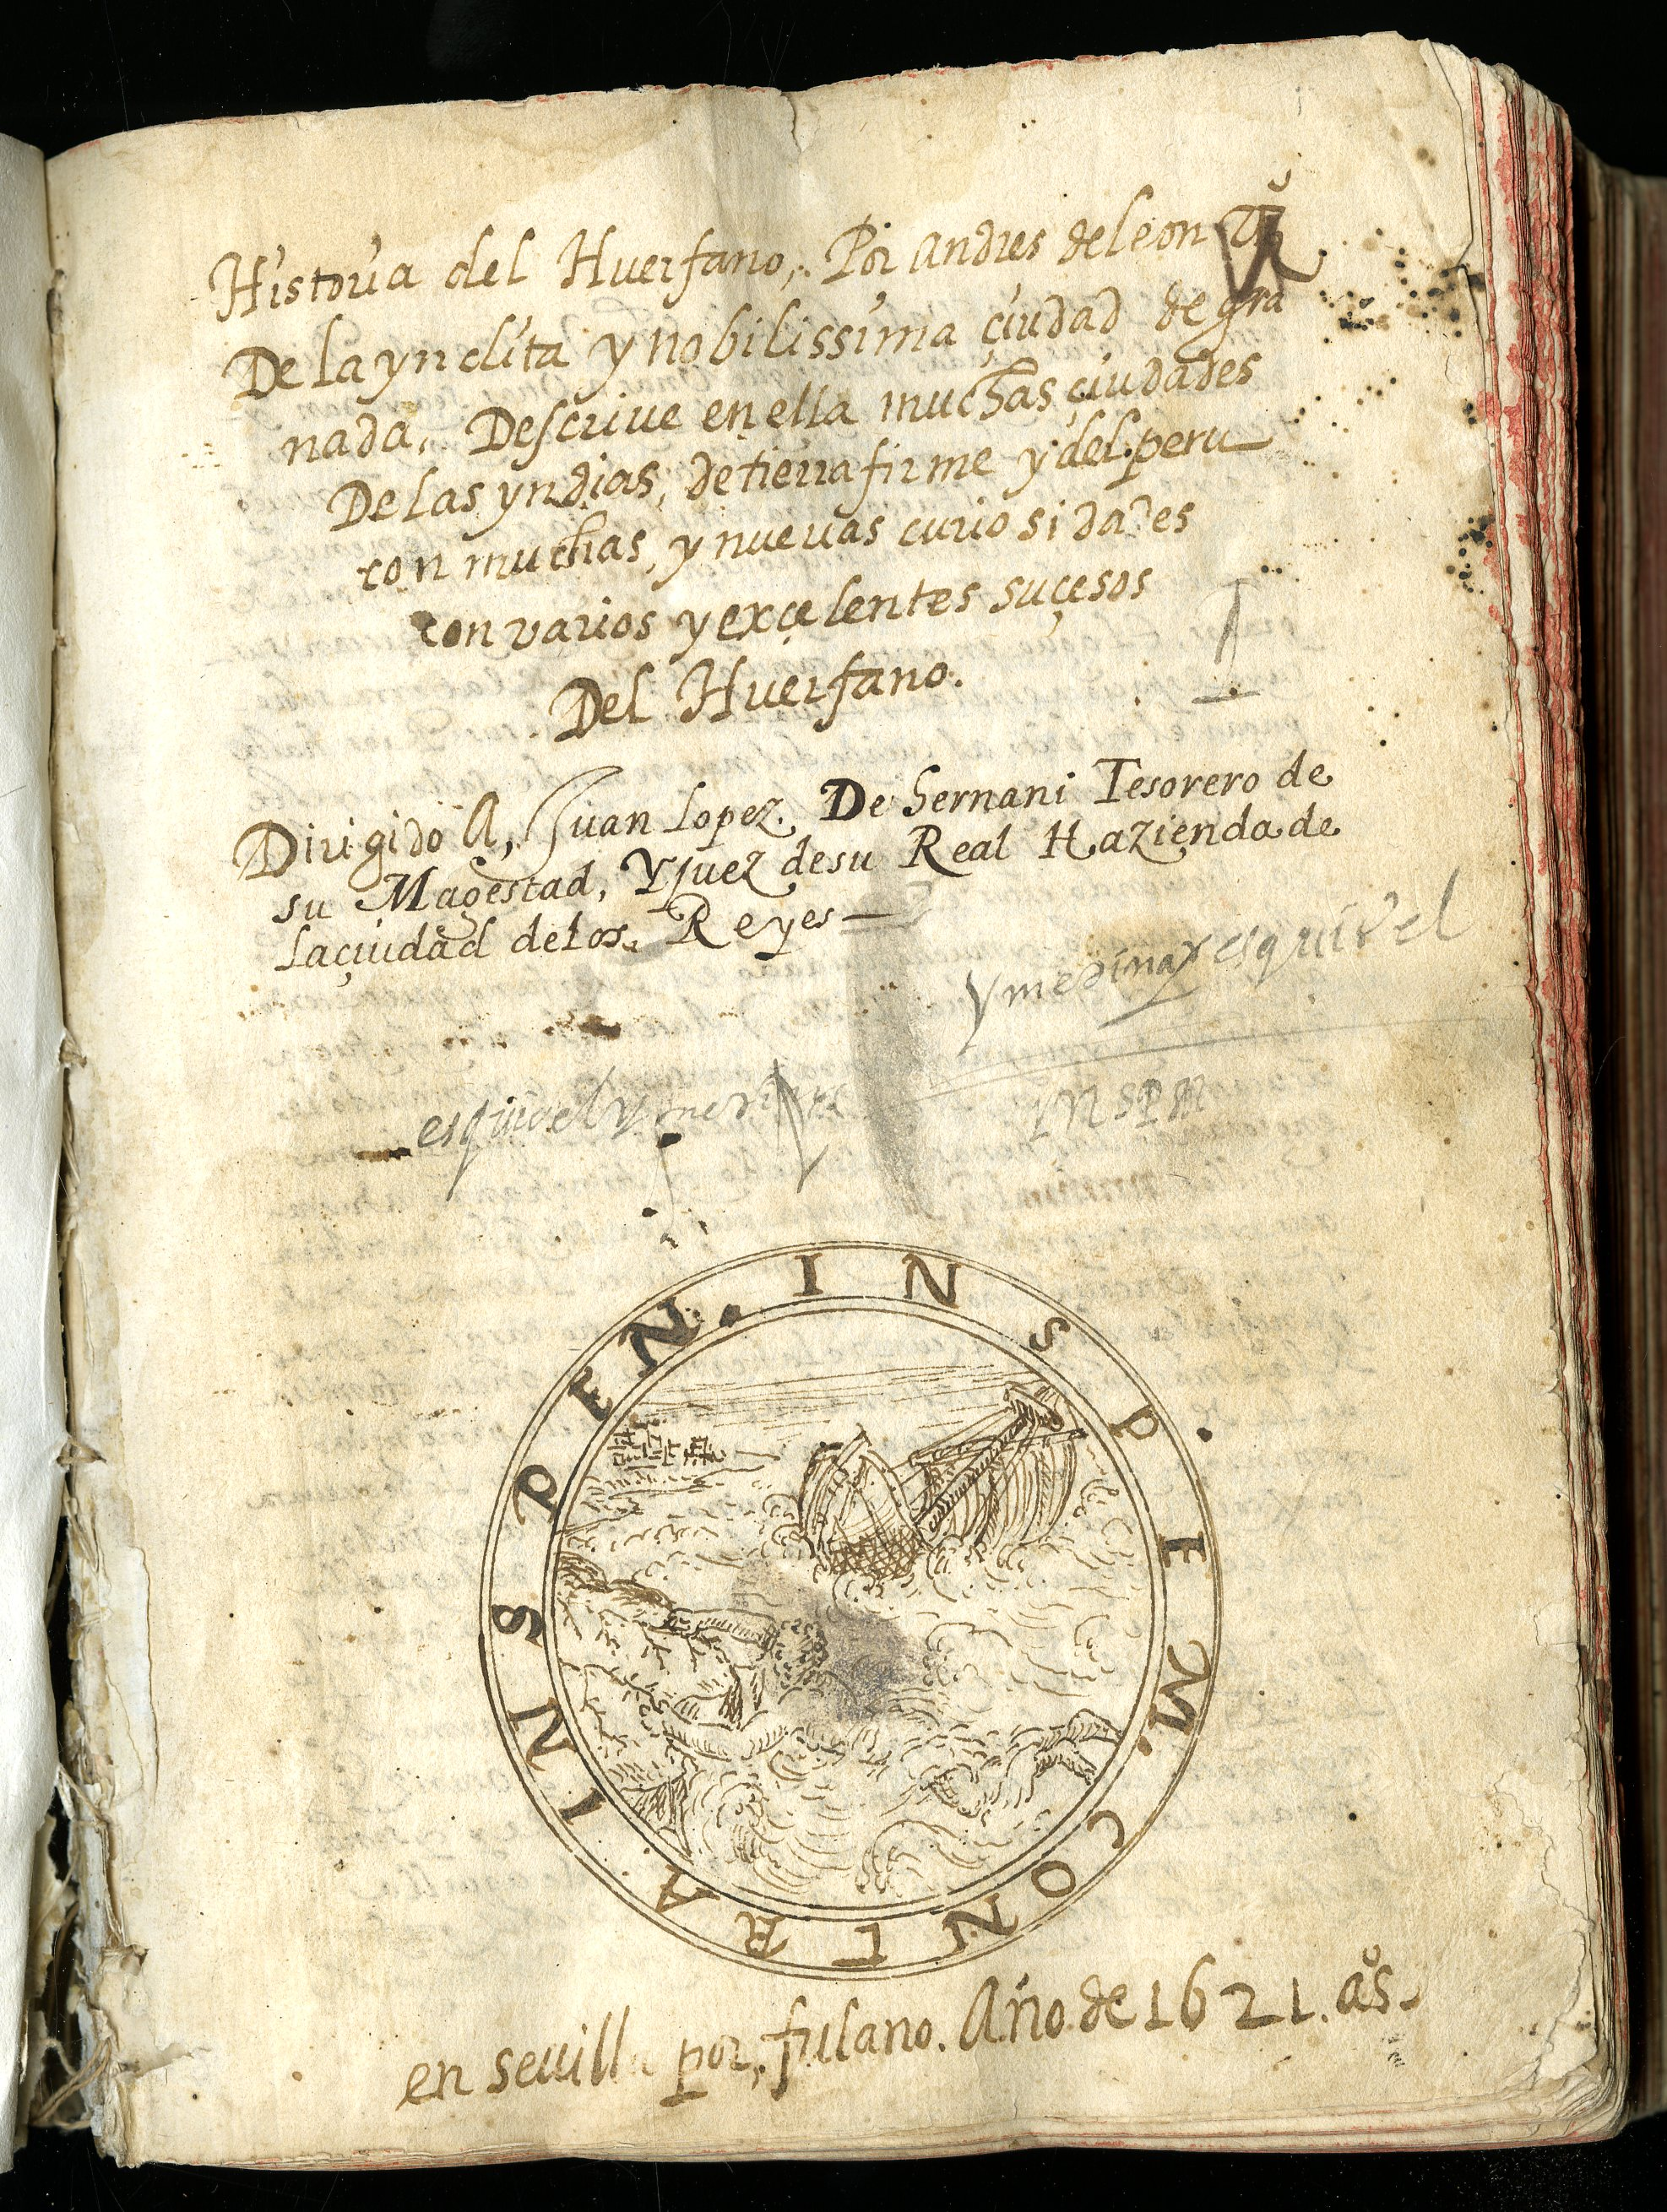 An Orphan's Tale. The History of the Orphan Manuscript in the Hispanic Society Library, by Dr. Mitchell A. Codding, Executive Director and President, Hispanic Society